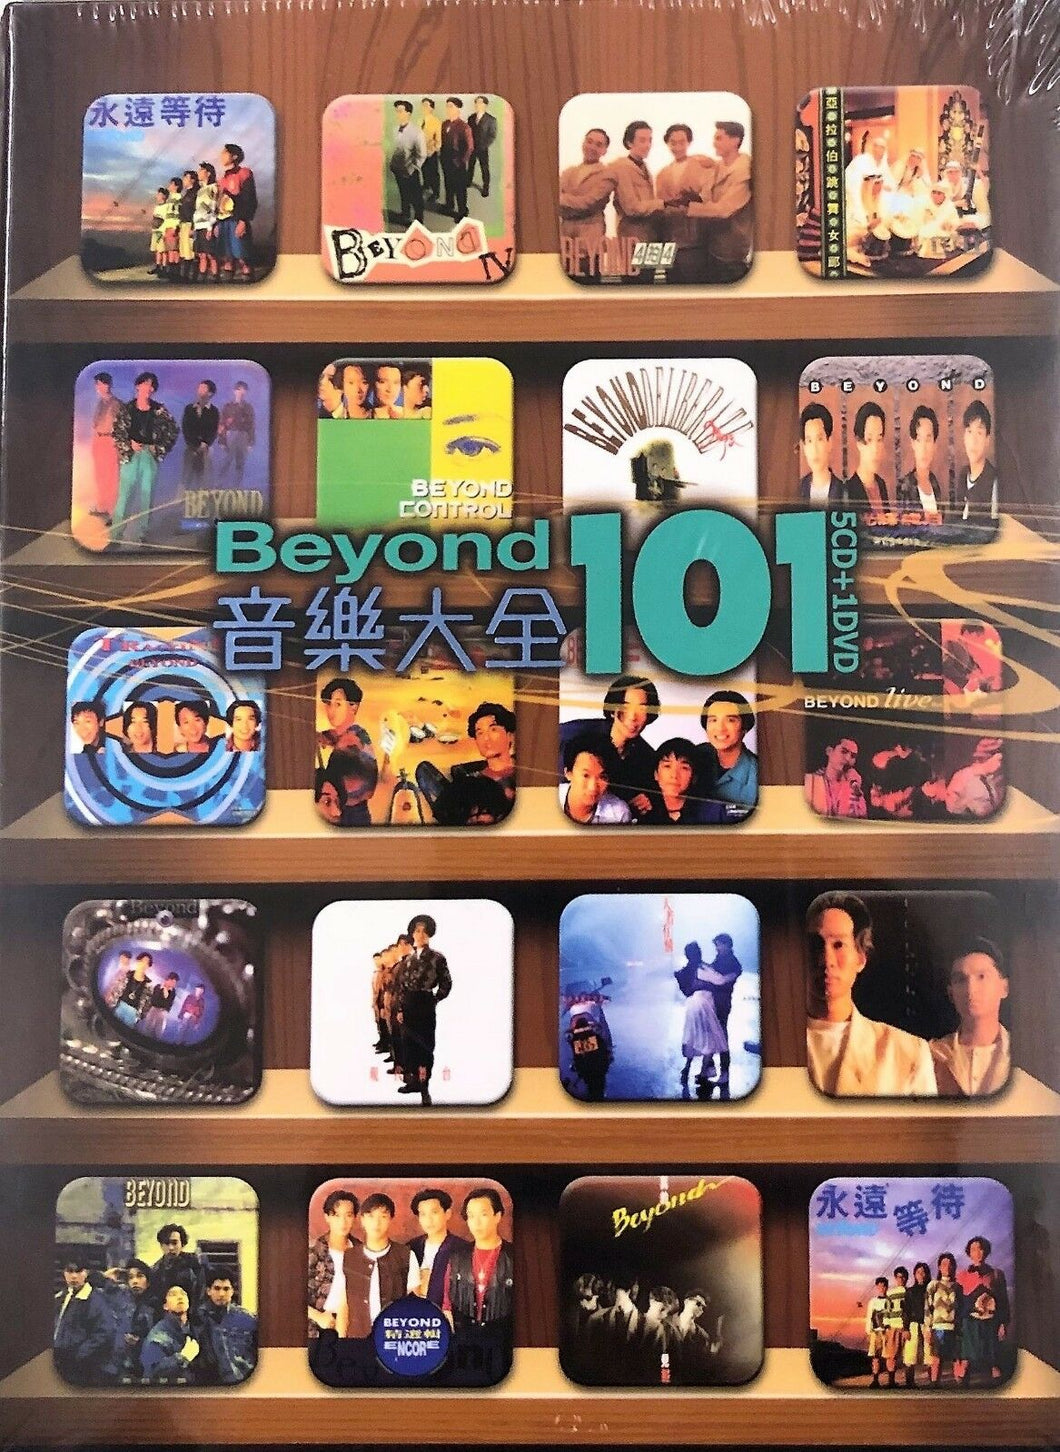 BEYOND -音樂大全101 (5CD & 91 LIVE DVD) ALL REGION